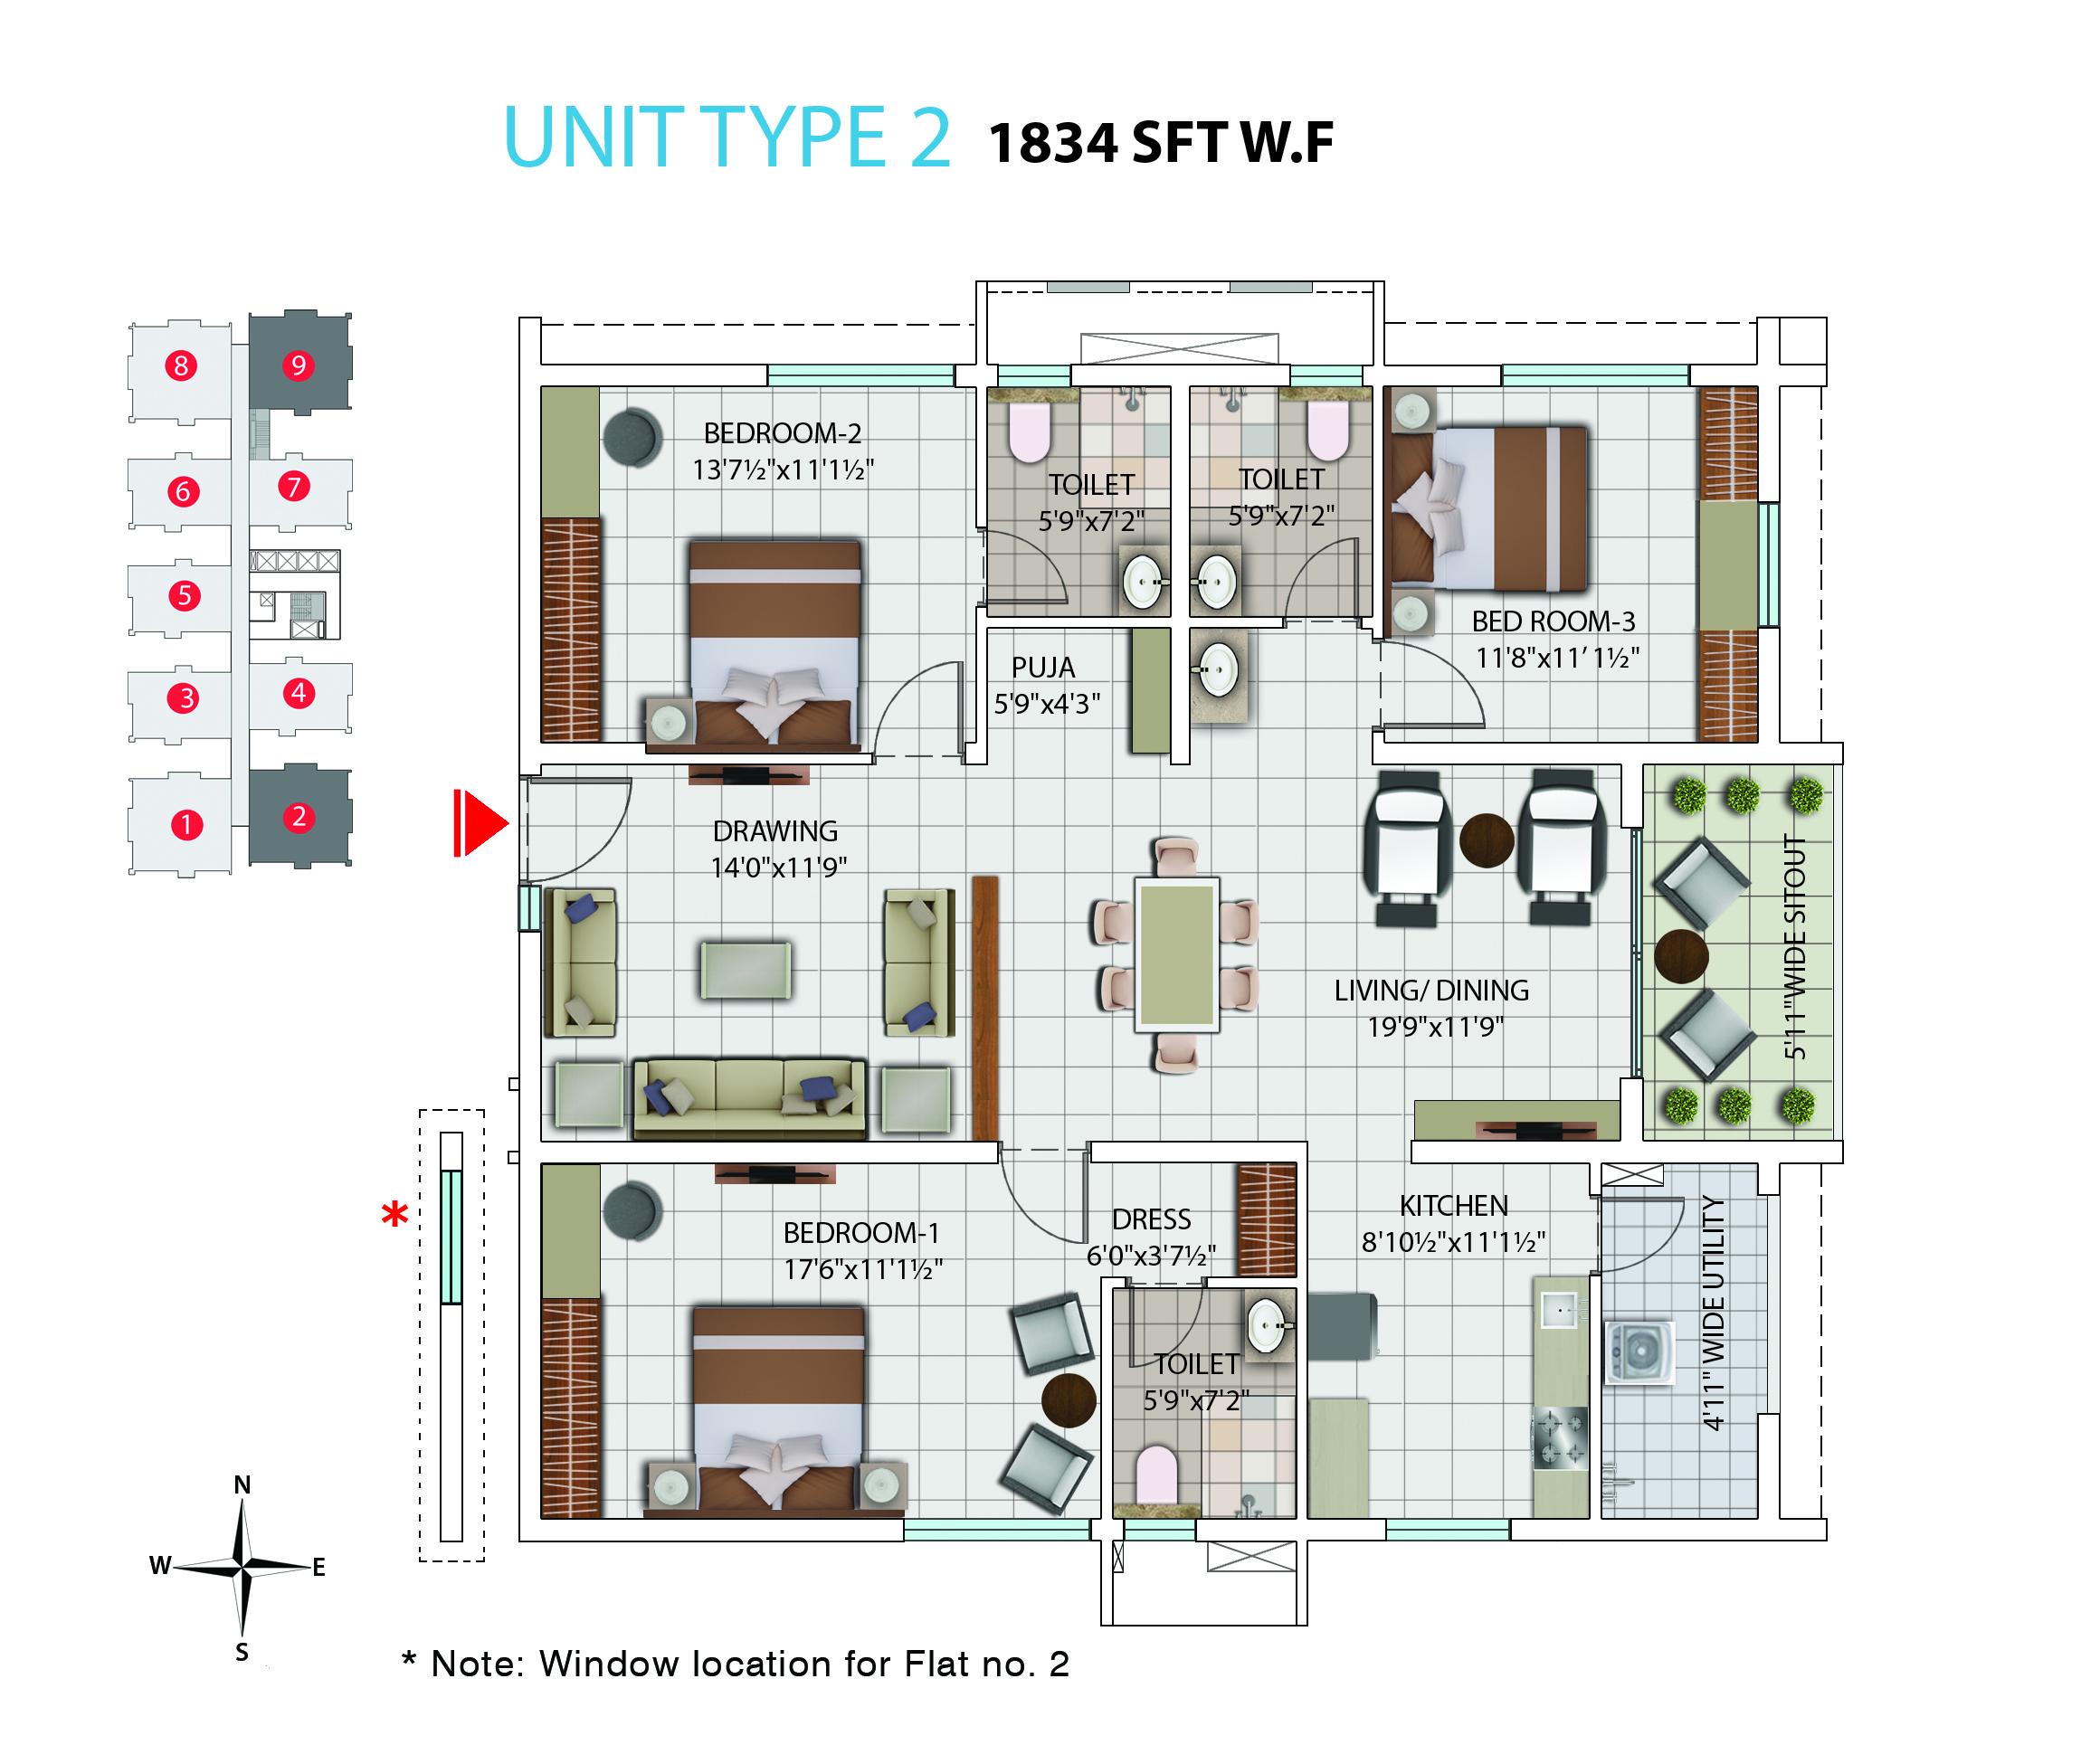 My Home Avatar Luxury 2 And 3 Bhk Apartments Flats In Gachibowli Electrical Wiring Diagram Bedroom Flat West Facing